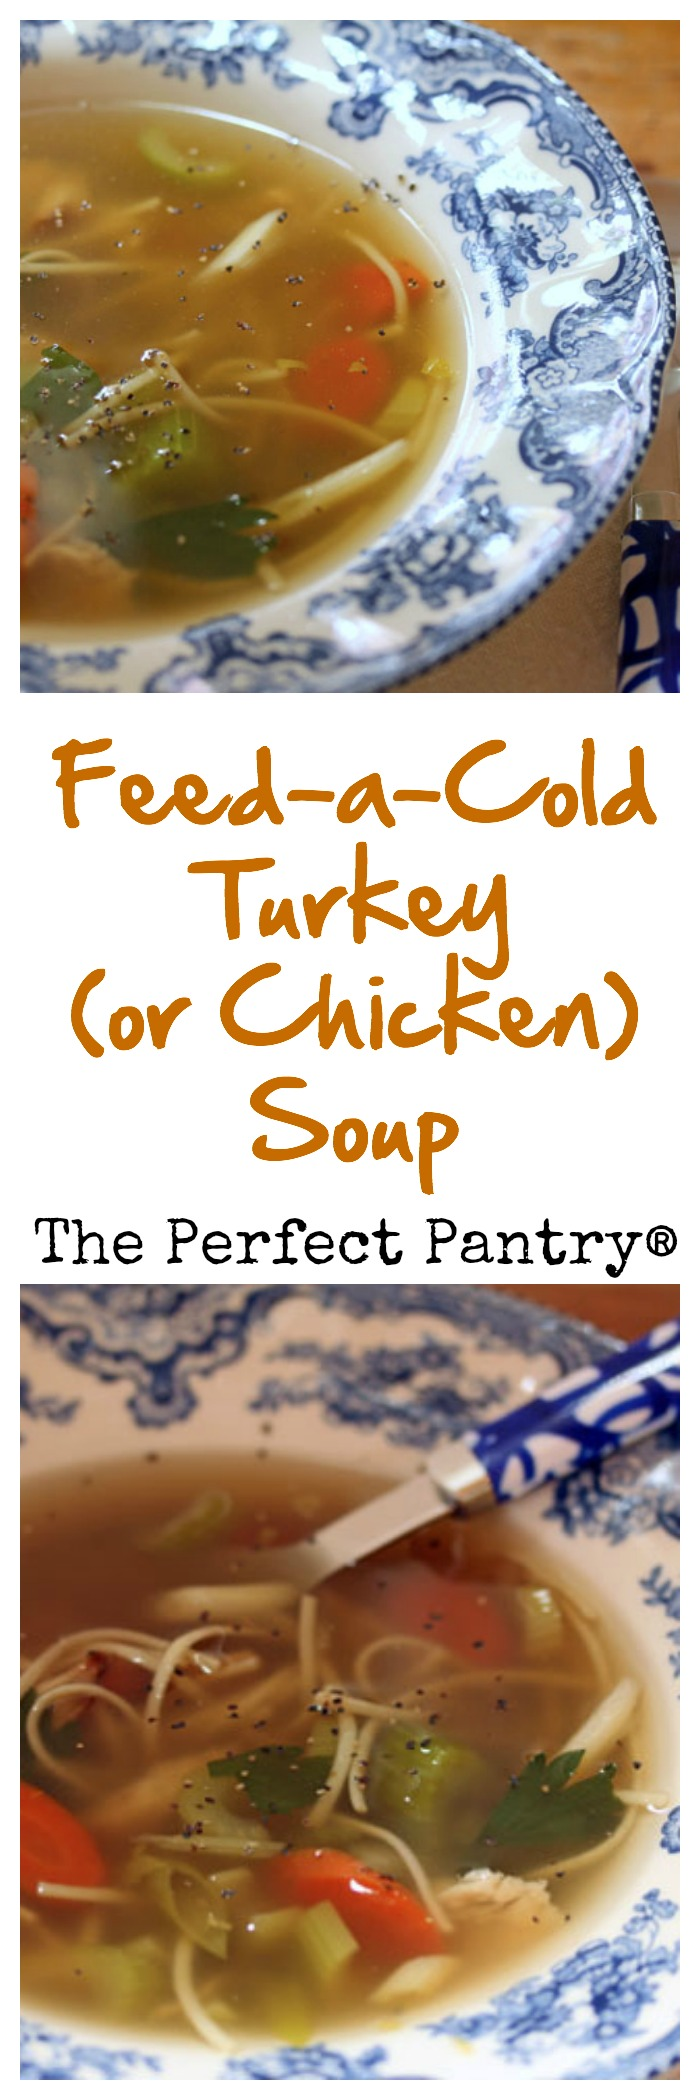 Banish any winter cold, with this magical turkey (or chicken) noodle soup!